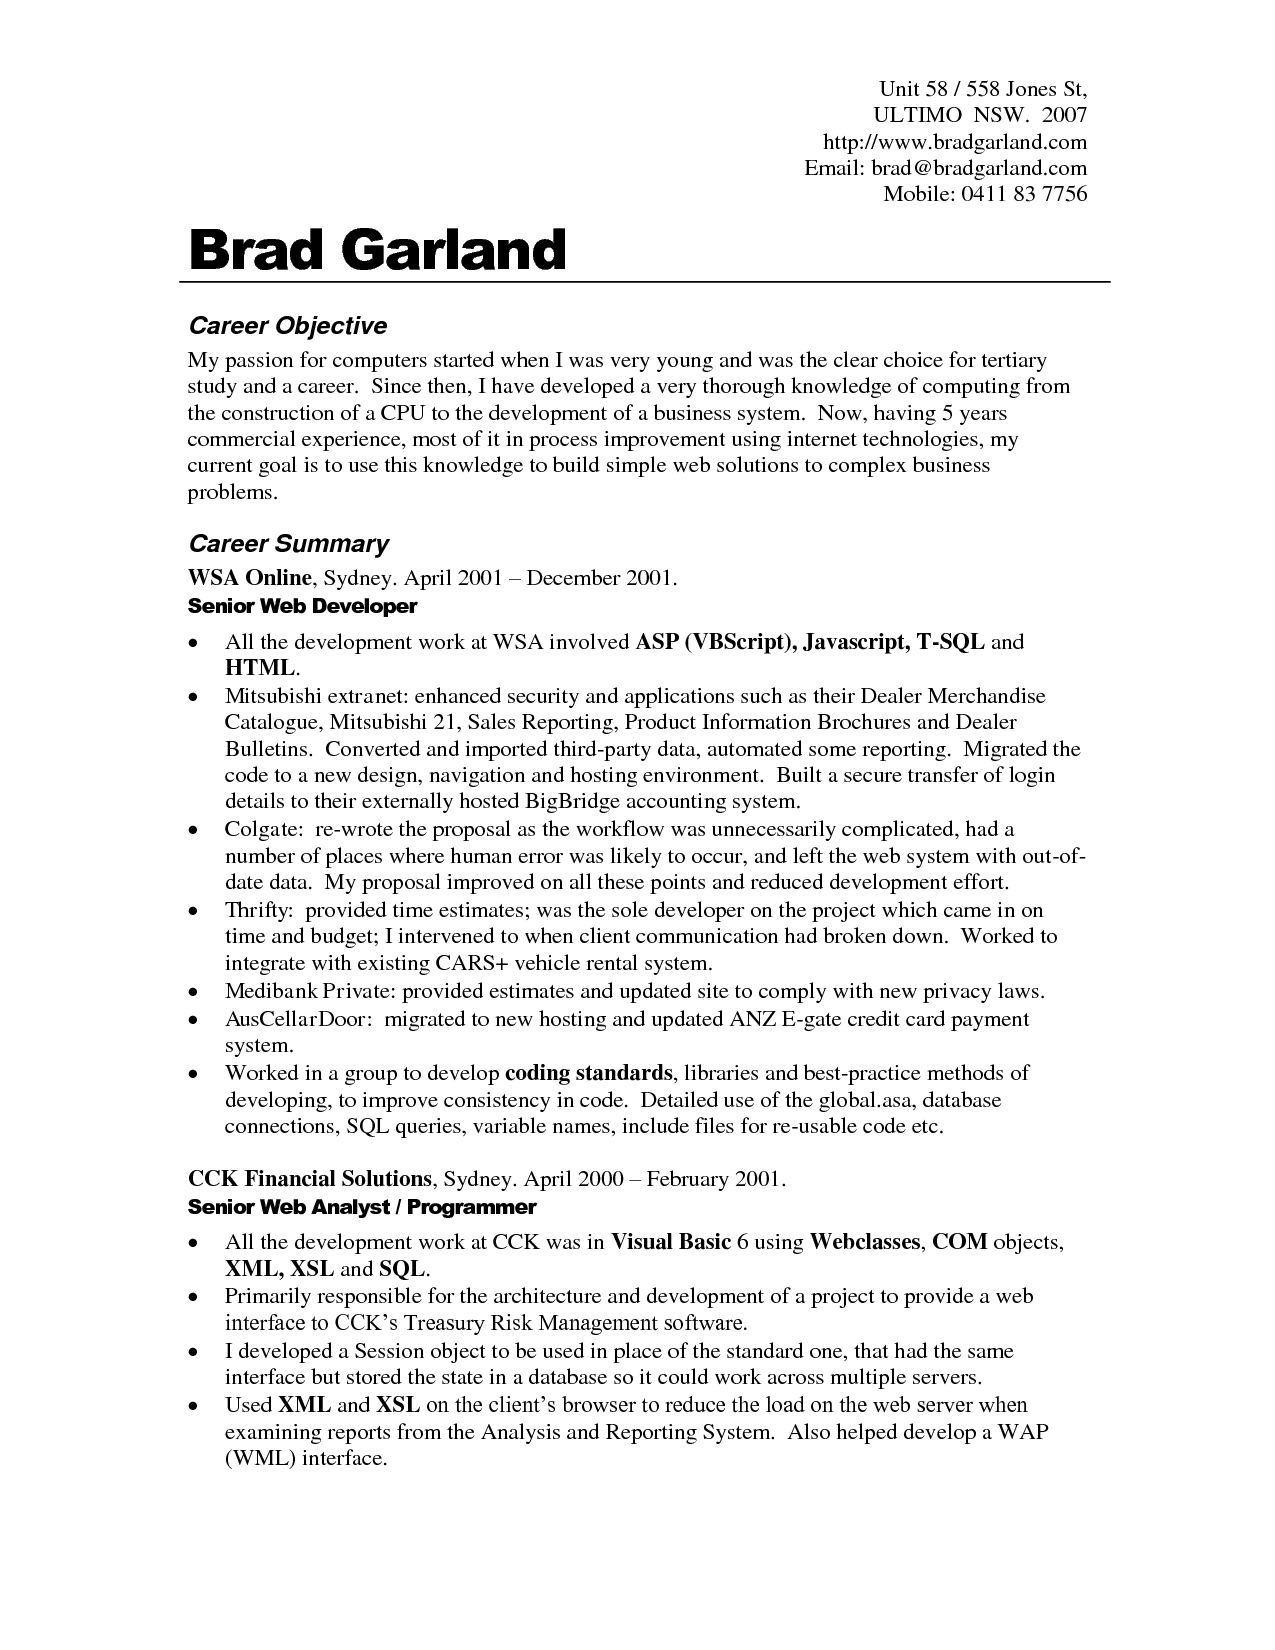 Attorney Resume Template Fair Resume Examples Job Objective  Sample Resume Entry Level And .